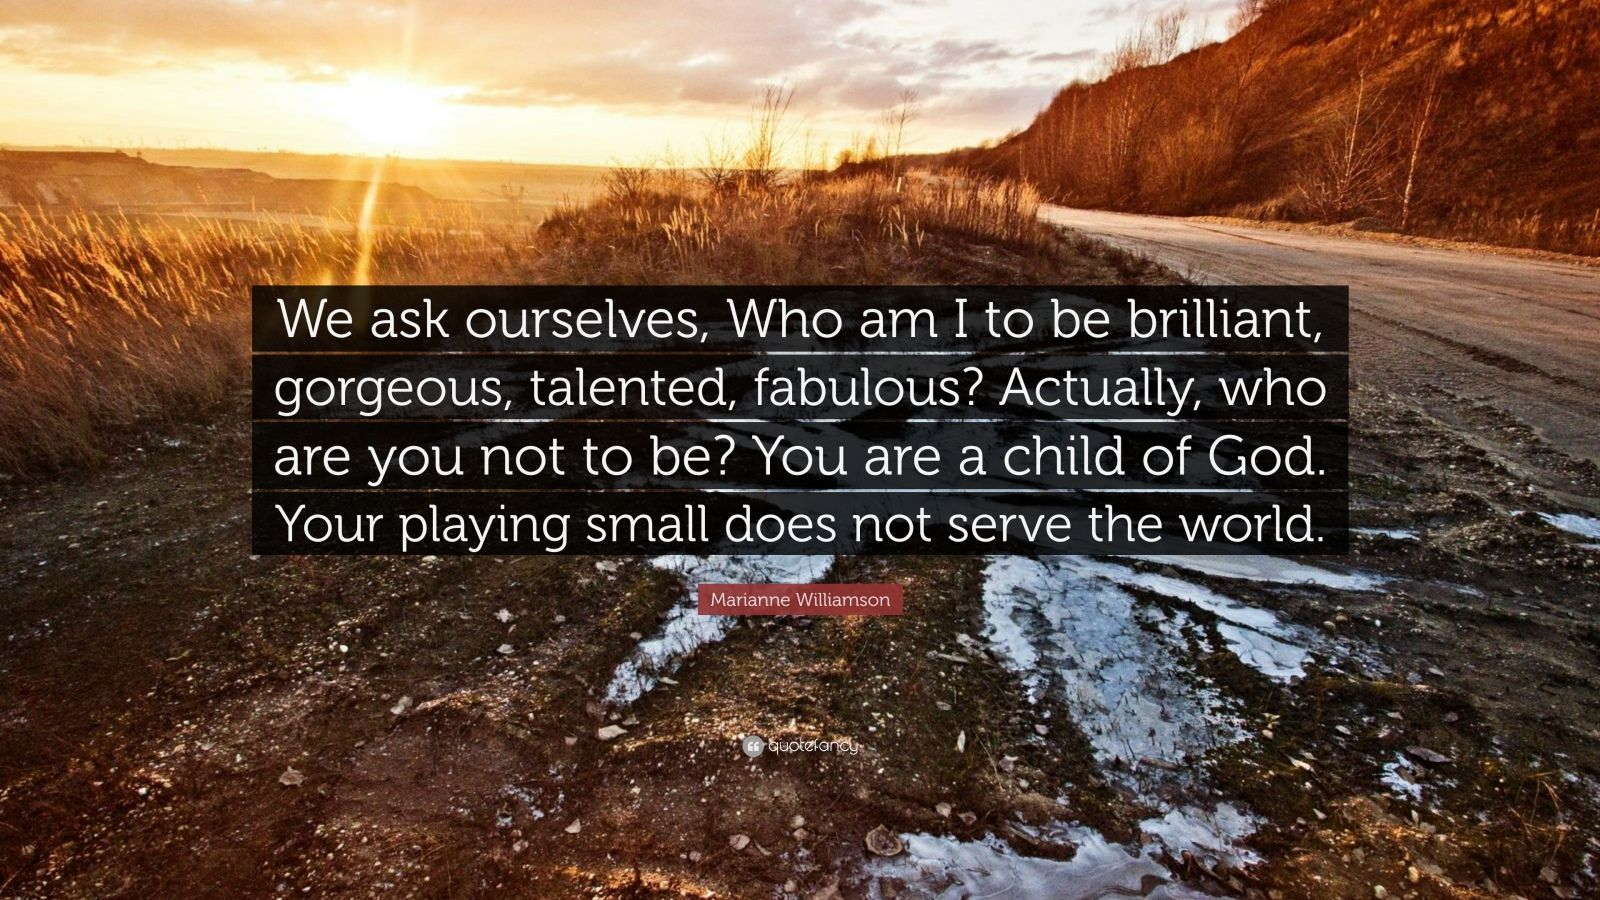 "Marianne Williamson Quote: ""We ask ourselves, Who am I to be brilliant, gorgeous, talented, fabulous? Actually, who are you not to be? You are a child of God. Your playing small does not serve the world."""